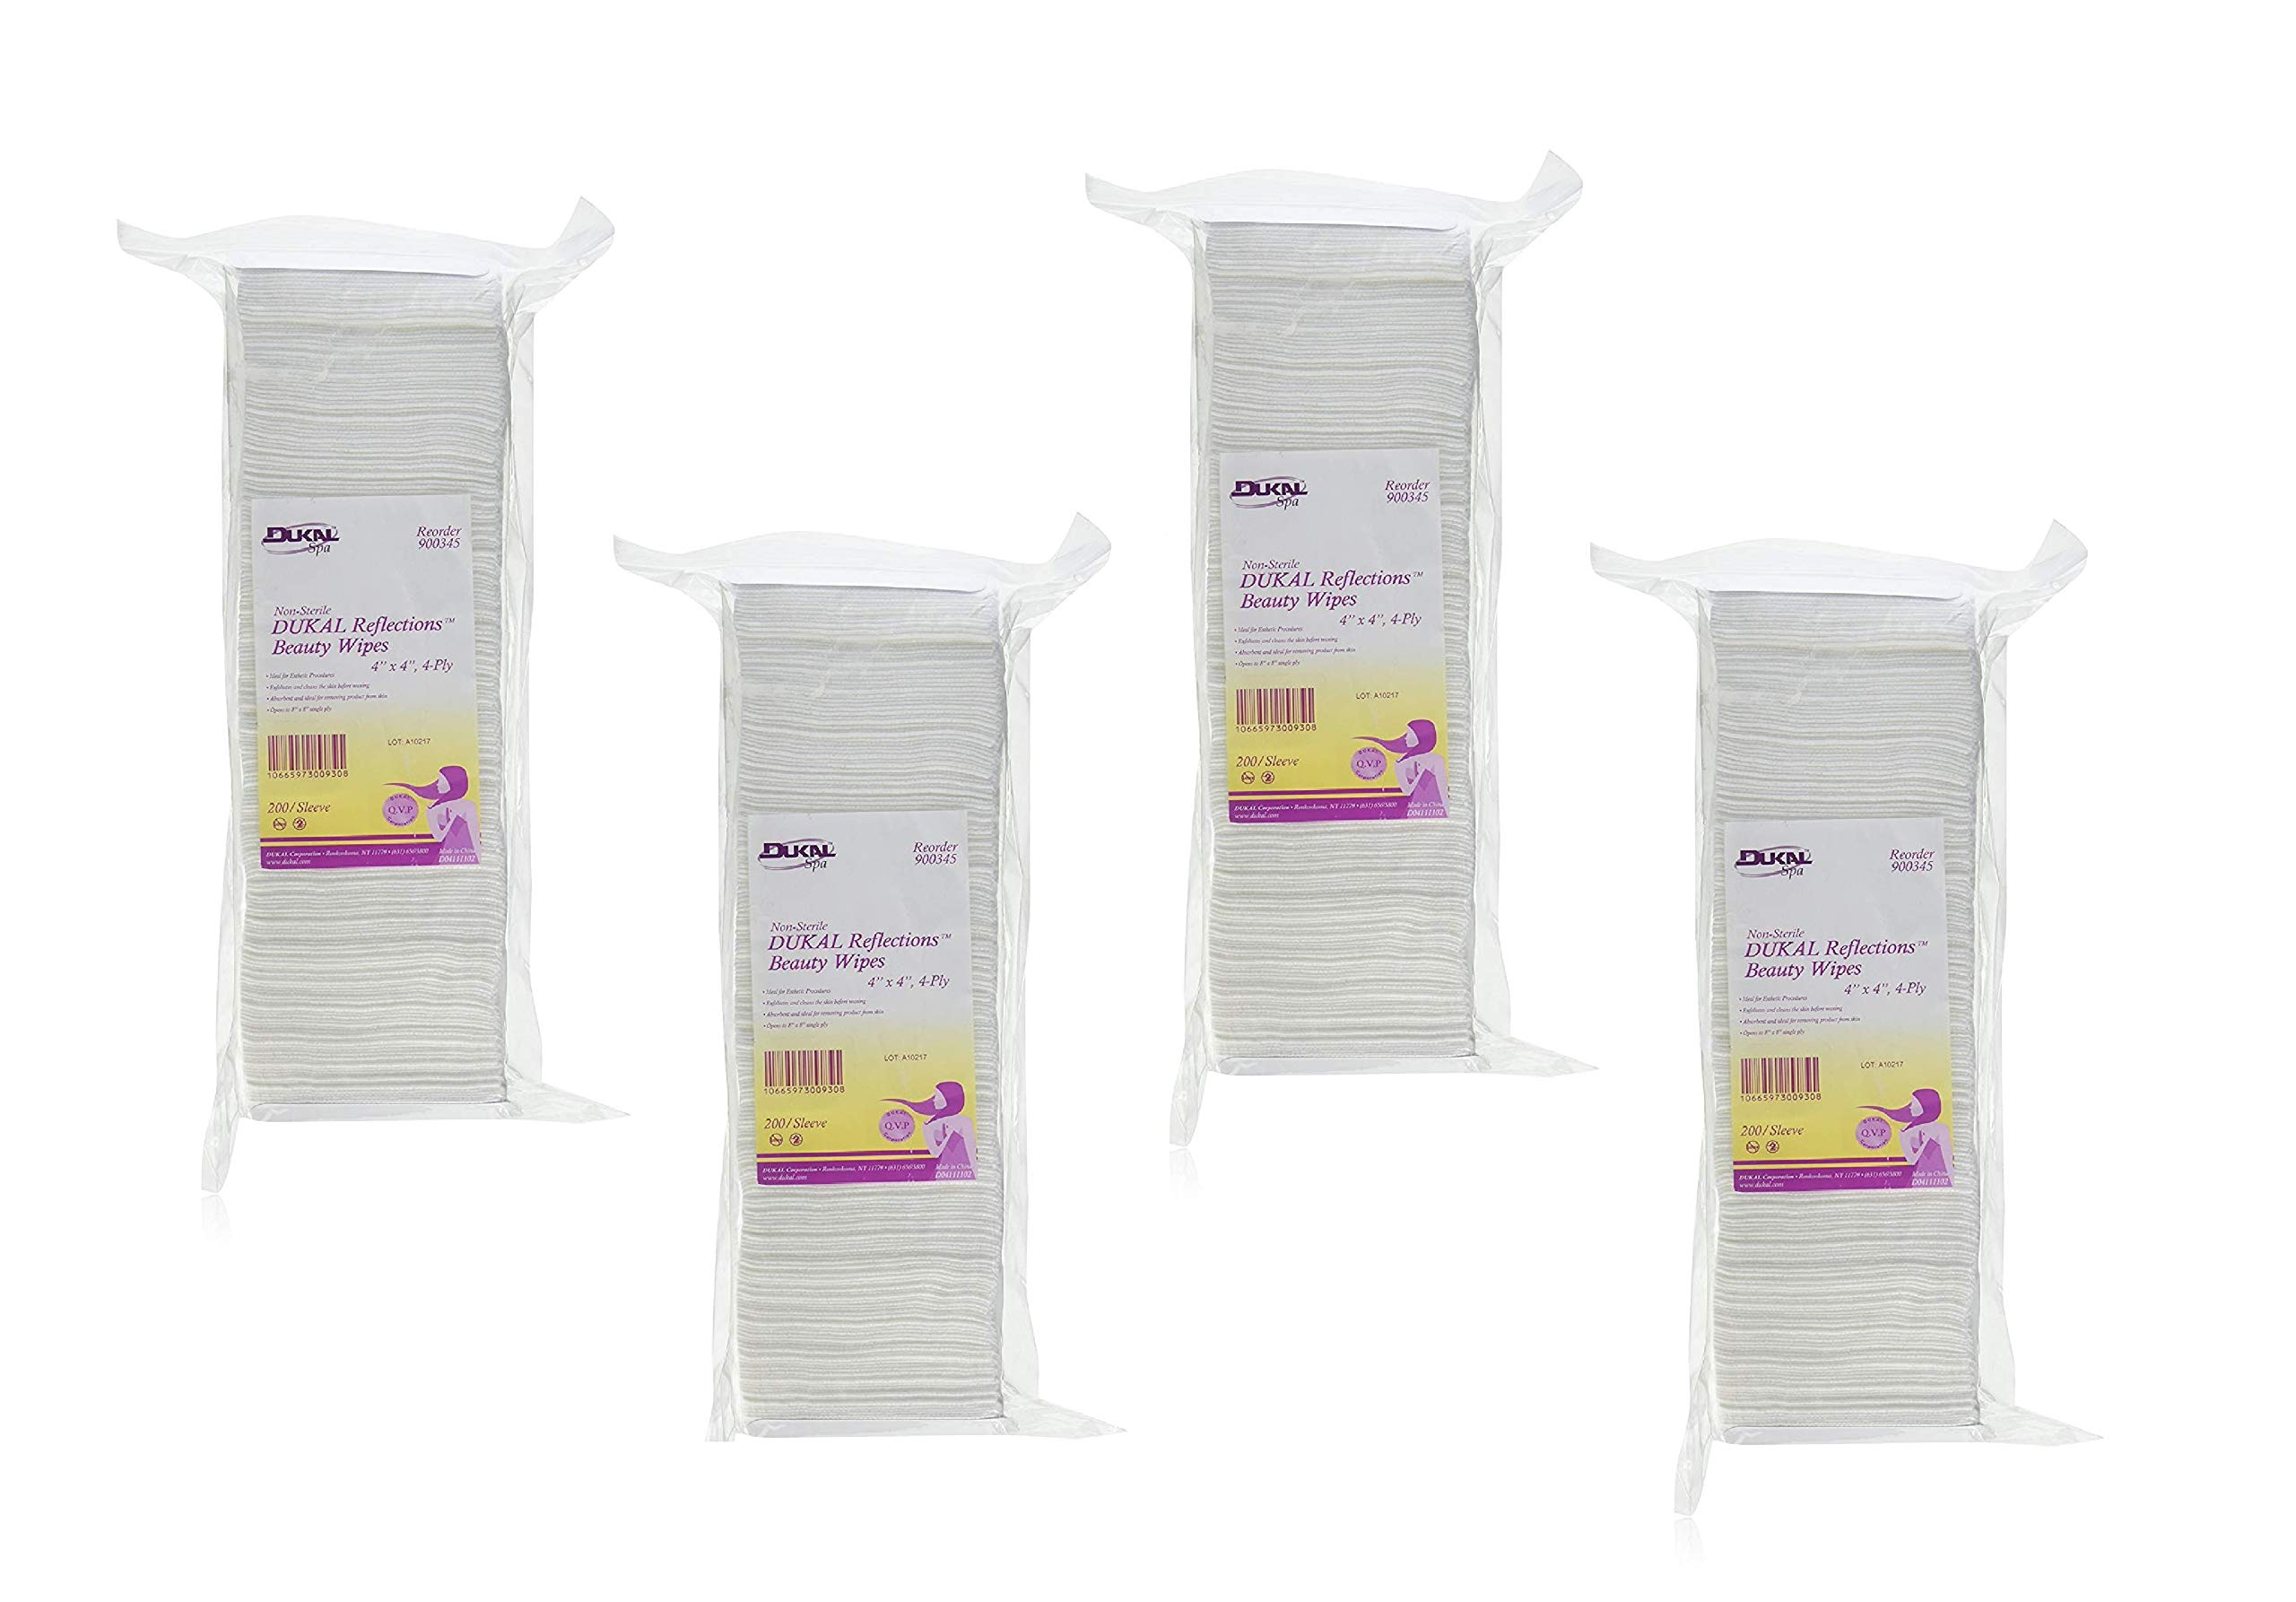 Non-Sterile - DUKAL Reflections Beauty Wipes - Latex Free (4-Ply) (4'' x 4'') - 200 count (4 Pack)